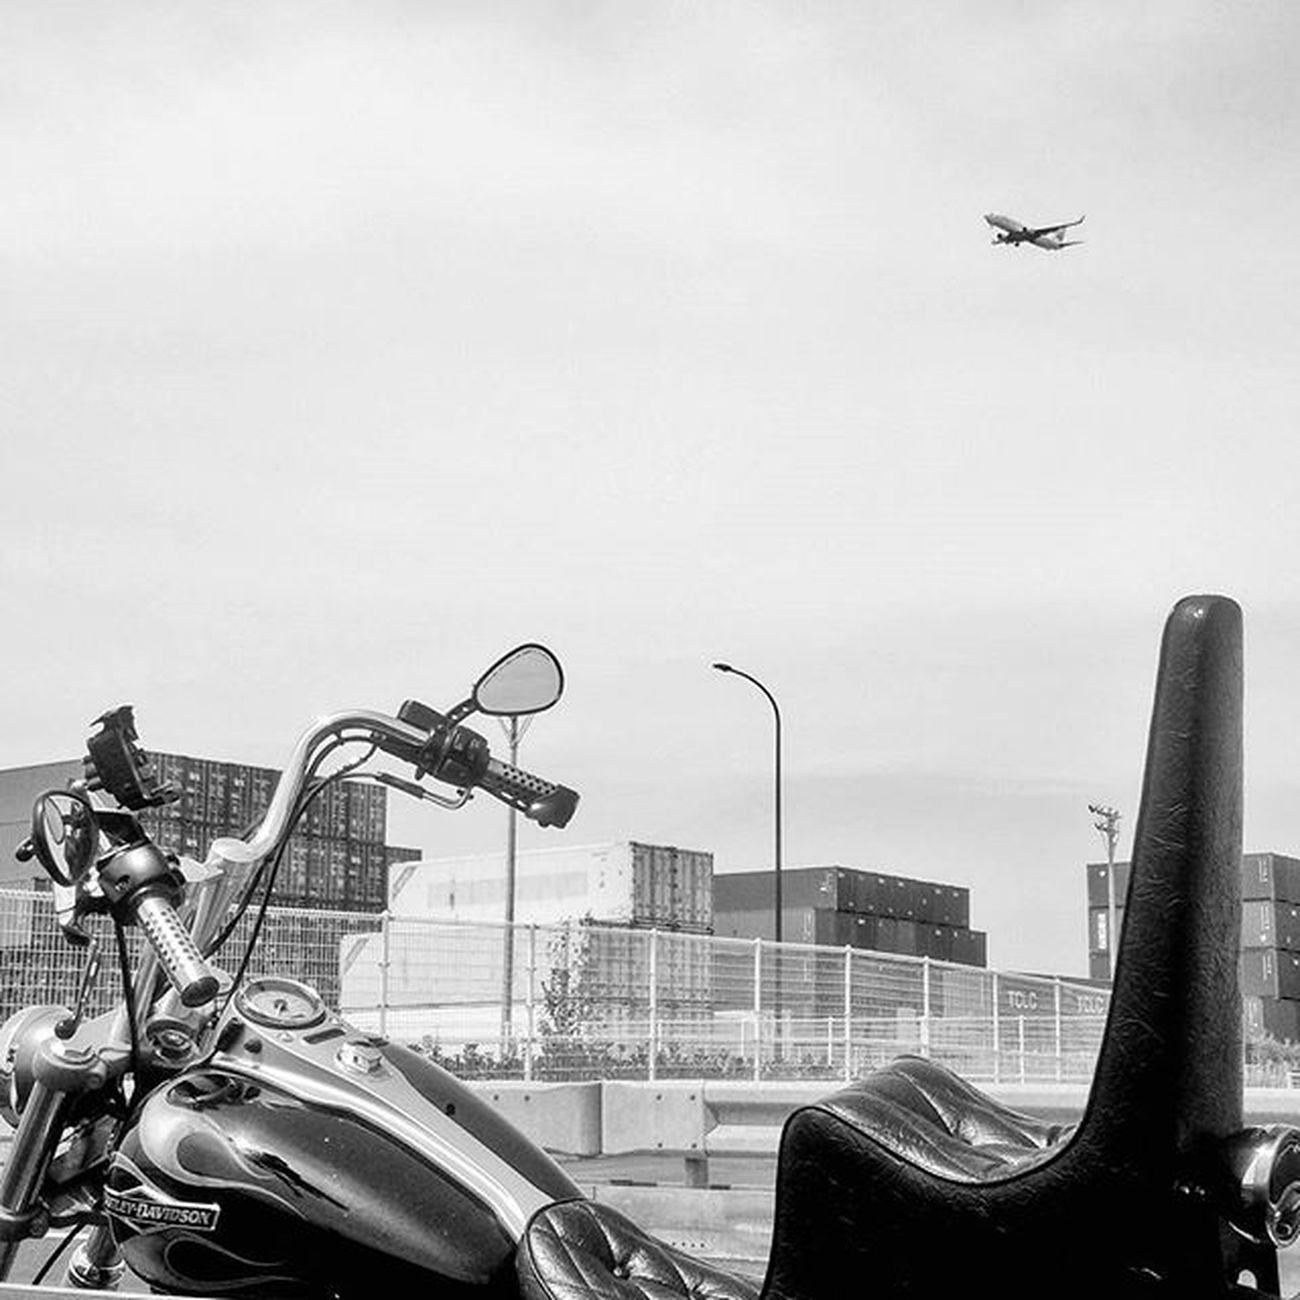 Harley Harleydavidson Chopper High Highseat Motorcycle Blackandwhite Bw Art Nice Airplane Jet Sky イマソラ 空 チョッパー ハーレー オートバイ バイク 港 Vscocam Vscogood Contena Port Sea igersigdaily cool moto 写真好きな人と繋がりたい